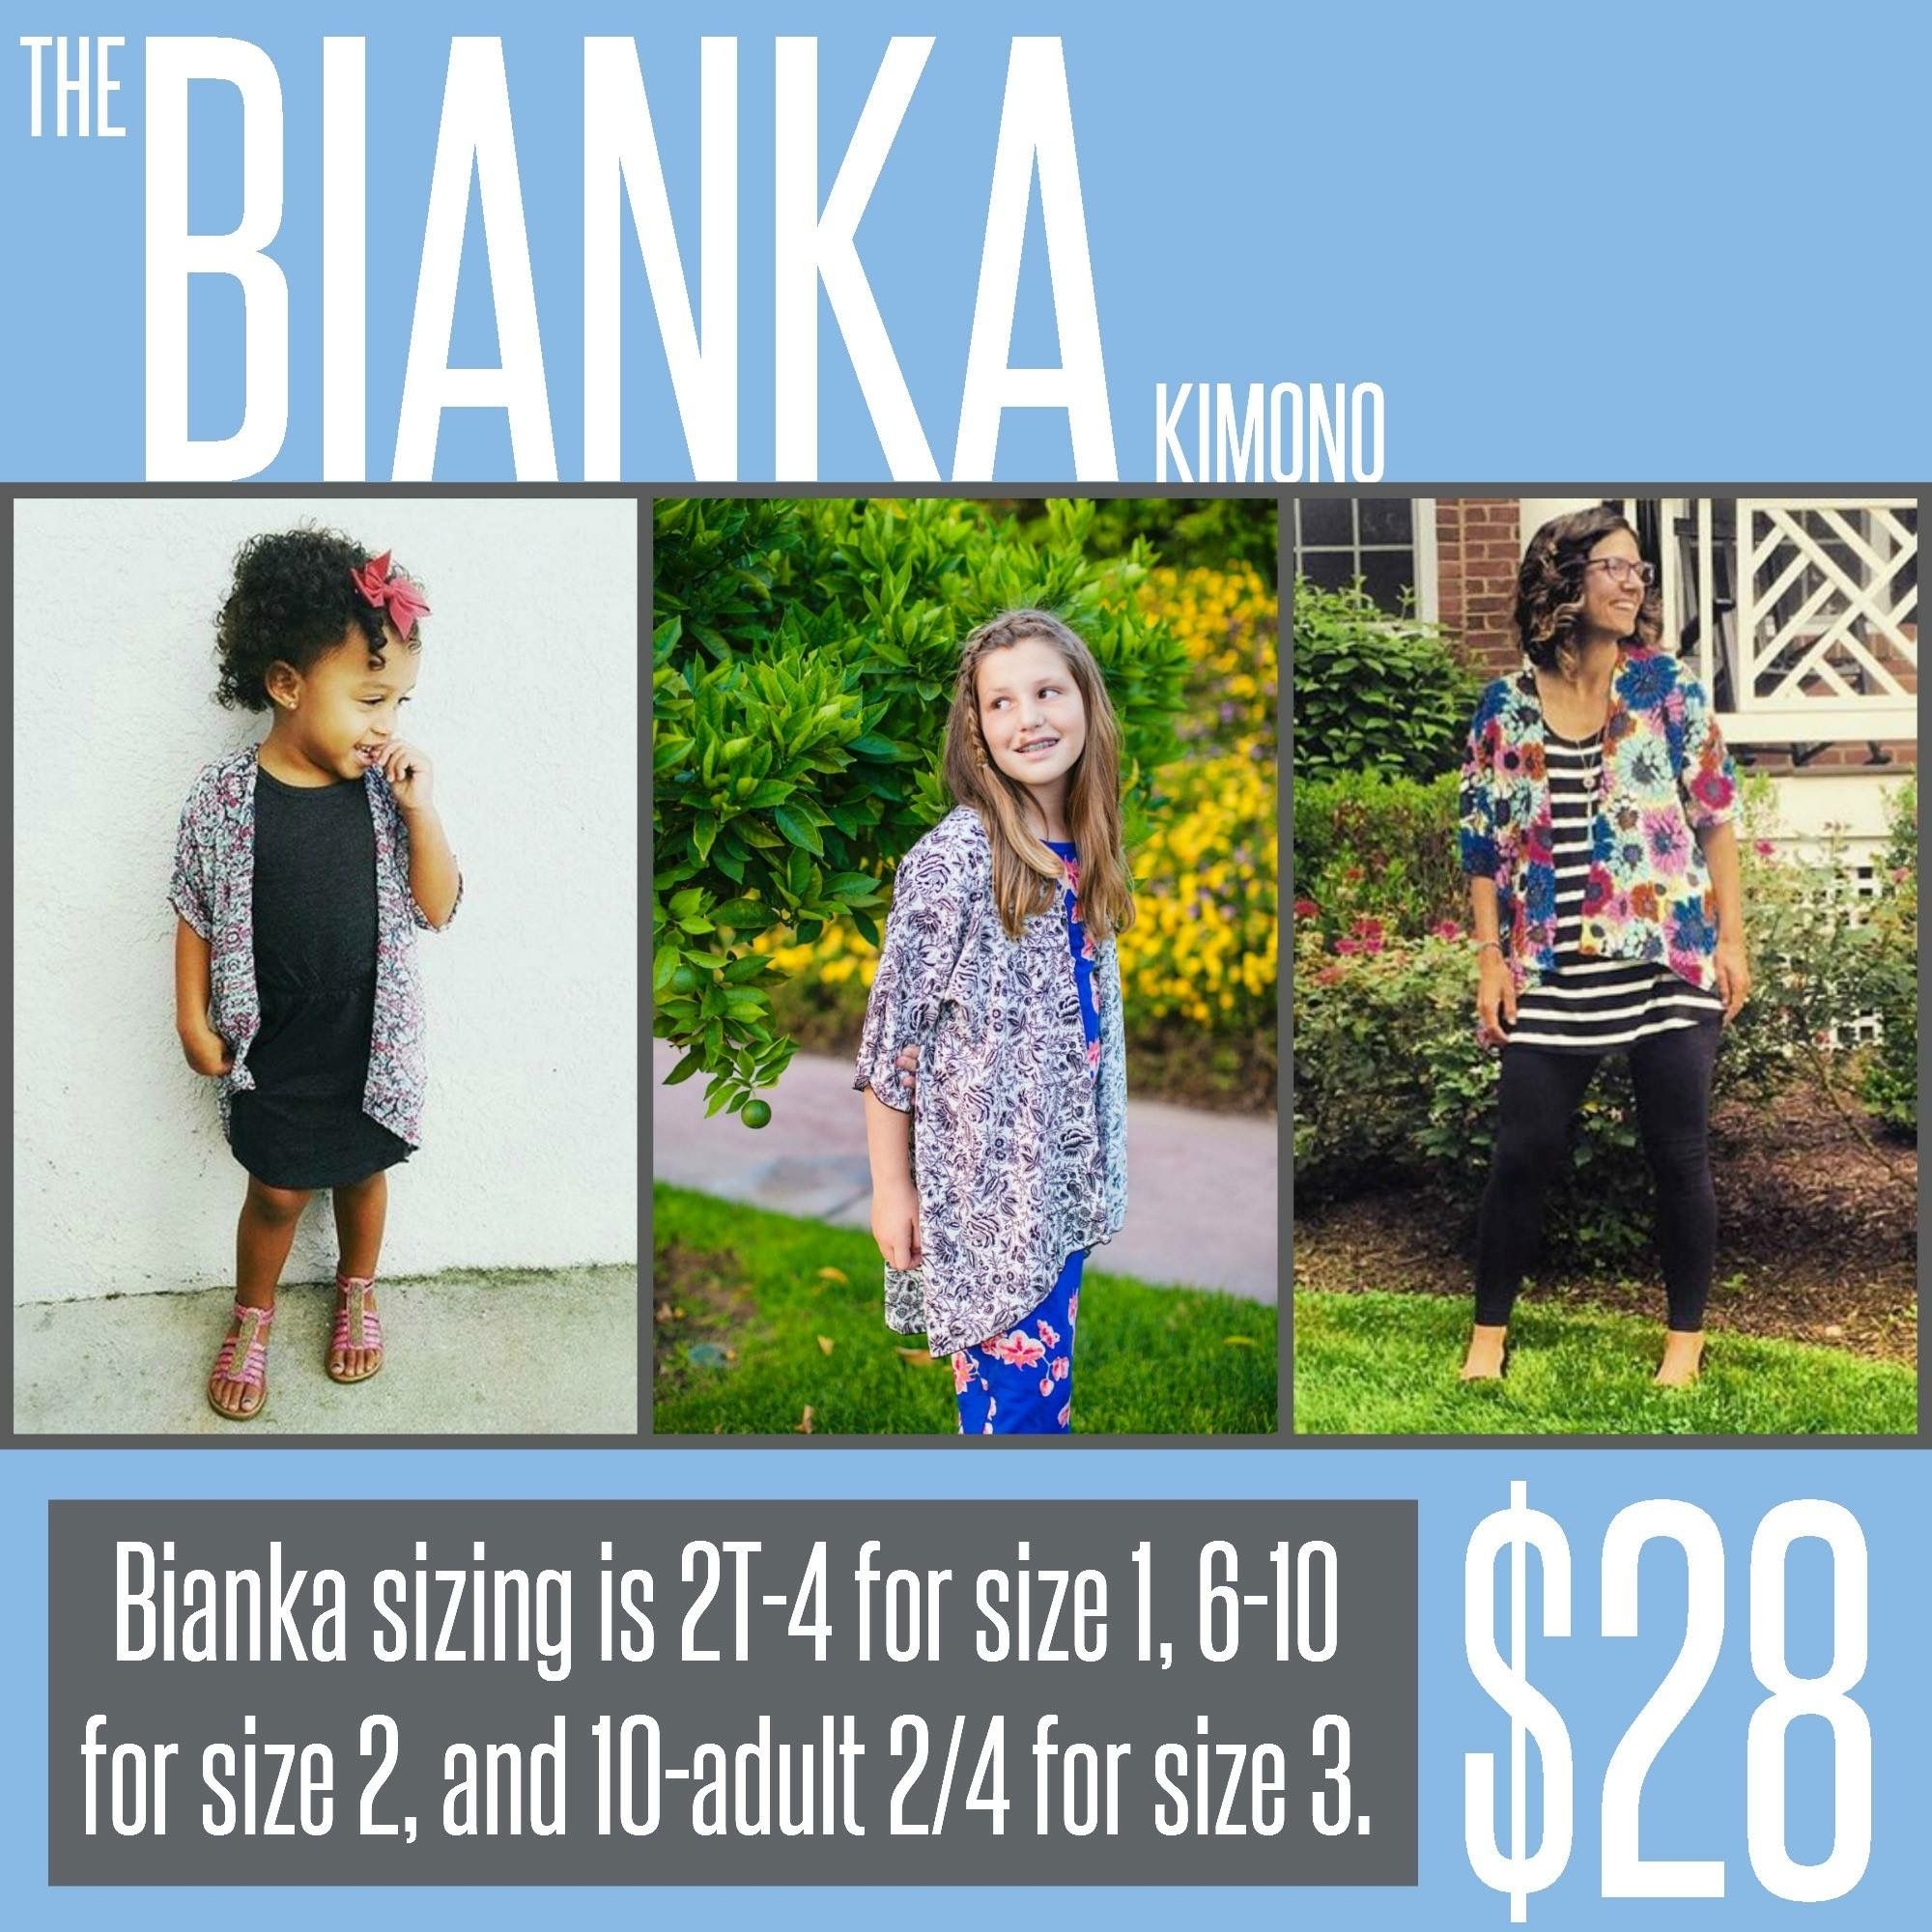 Bianka Kimono For Your Little Ones And Yourself I Carry Size 3 Which Fits Many S This Is The Perfect Accent Piece To Wardrobe